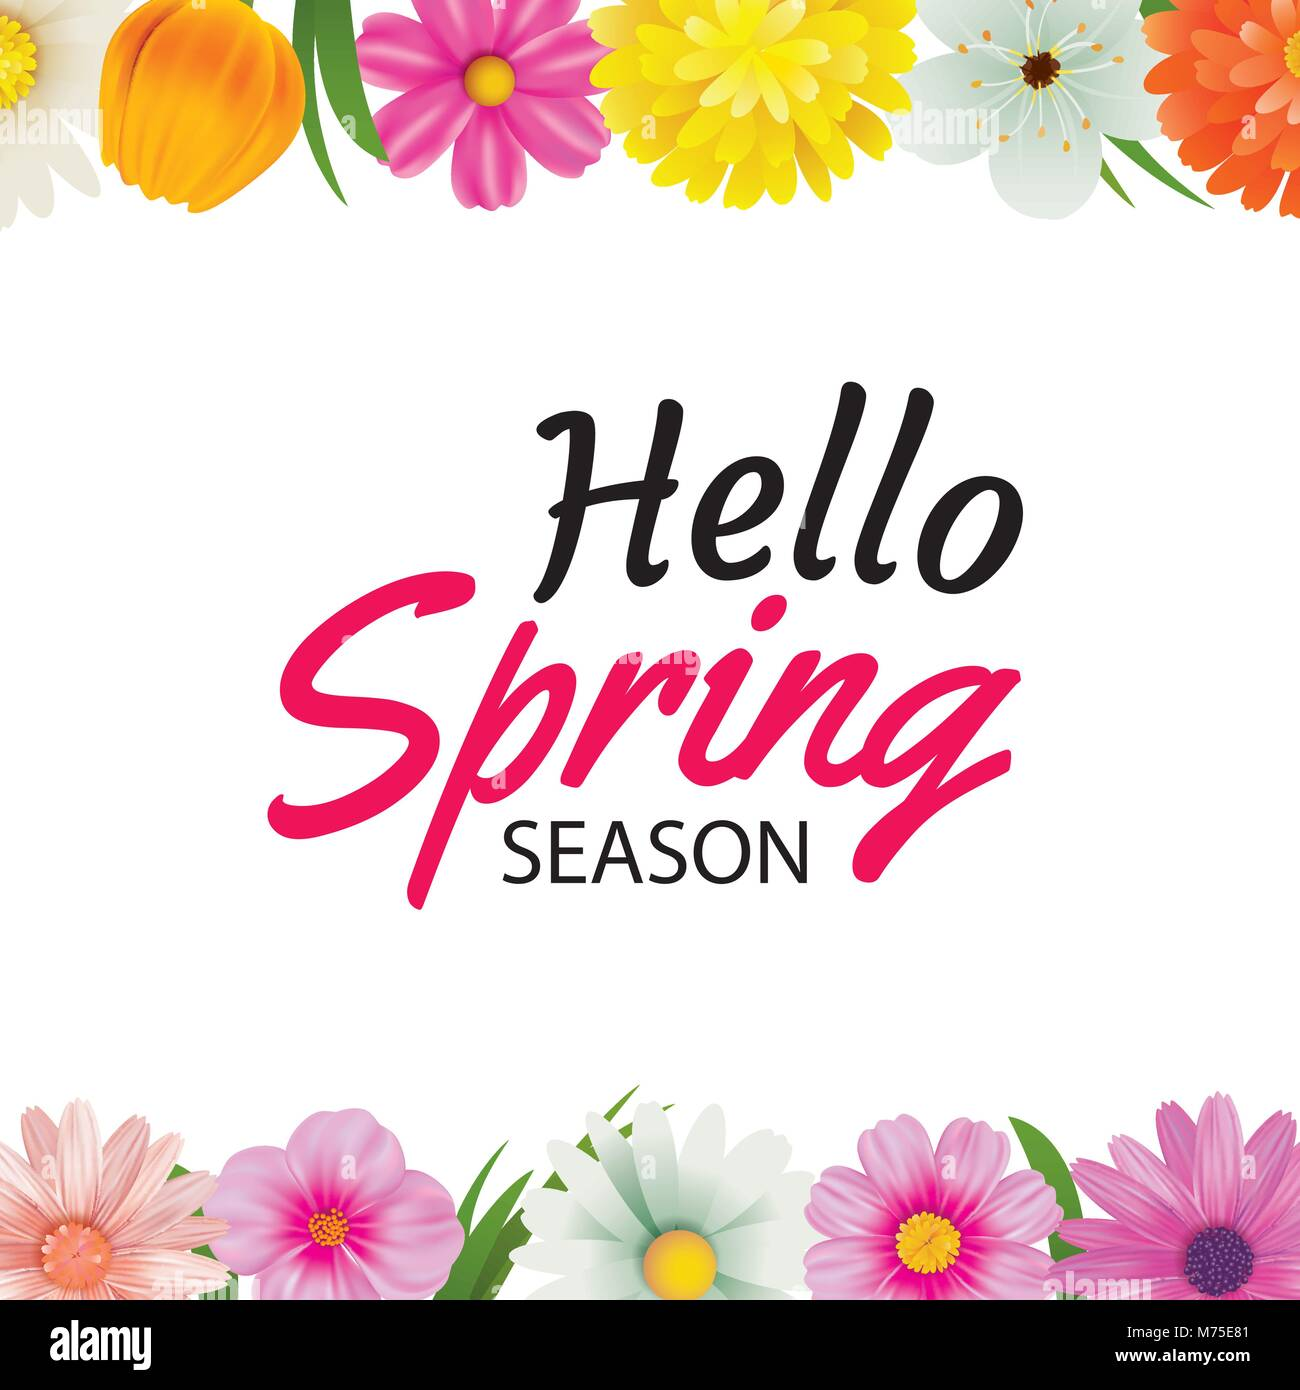 Hello spring season greeting card with colorful flower frame stock hello spring season greeting card with colorful flower frame background template can be use voucher wallpaperflyers invitation posters brochure m4hsunfo Images